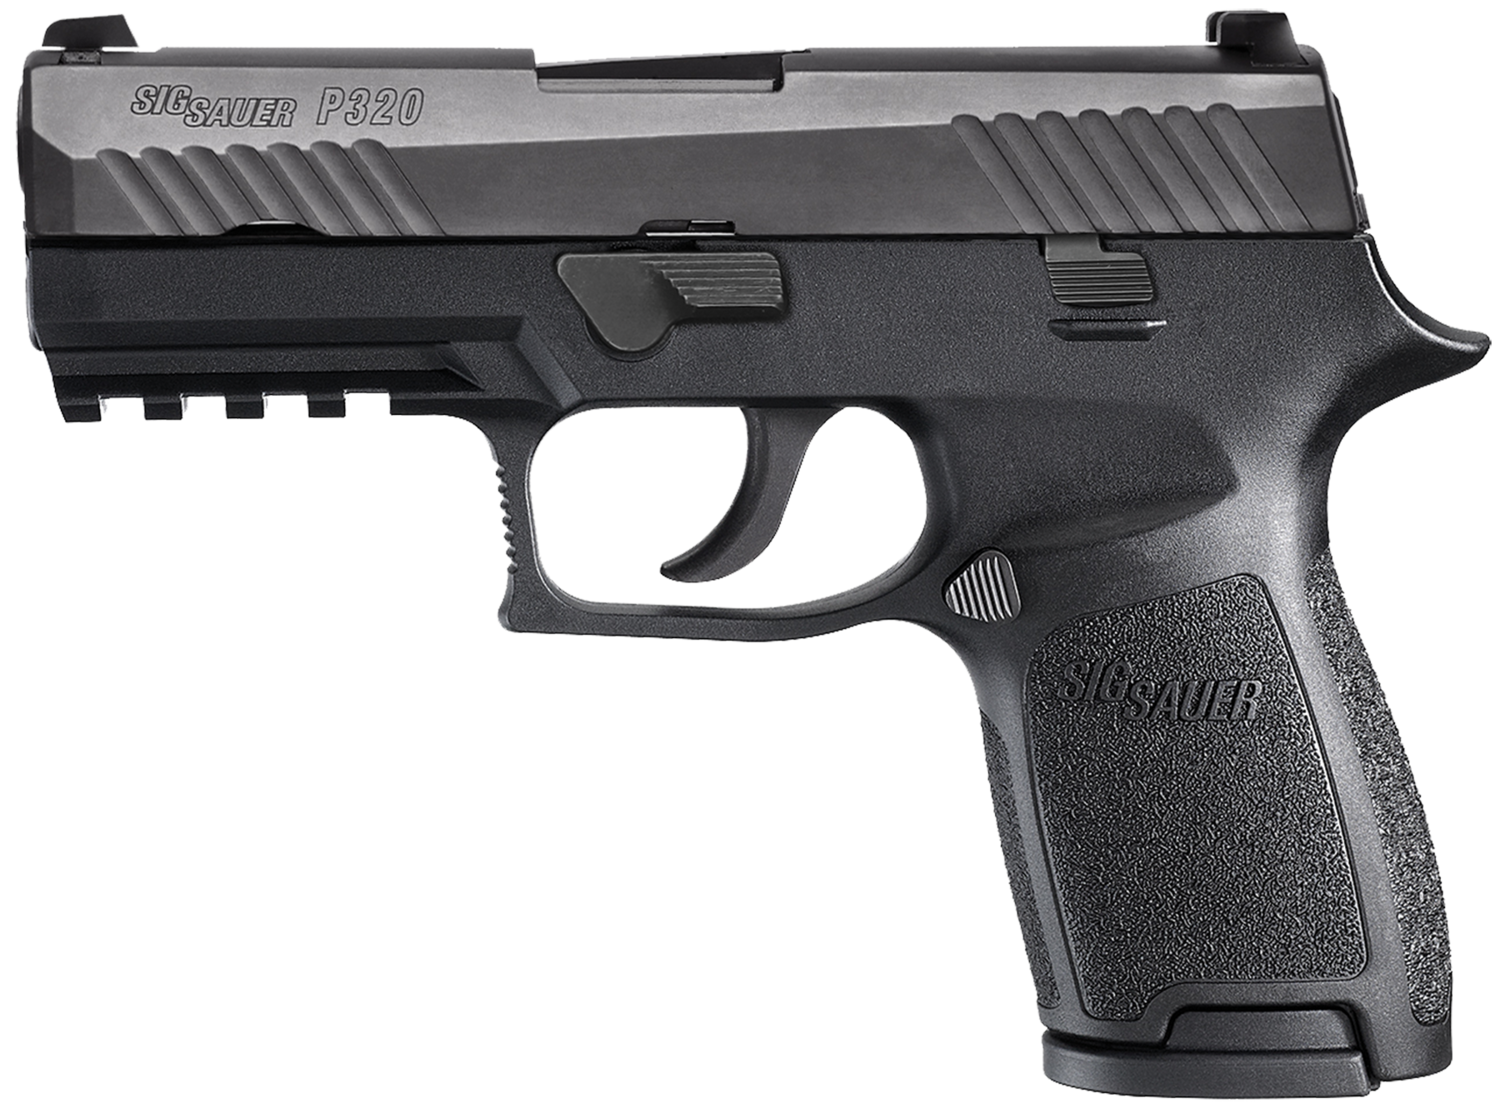 """80% Sig Sauer - P320 Compact Double 9mm Luger 3.9"""" 15+1 - 2 Mags - Black Polymer Grip - Black Nitron Stainless Steel"""